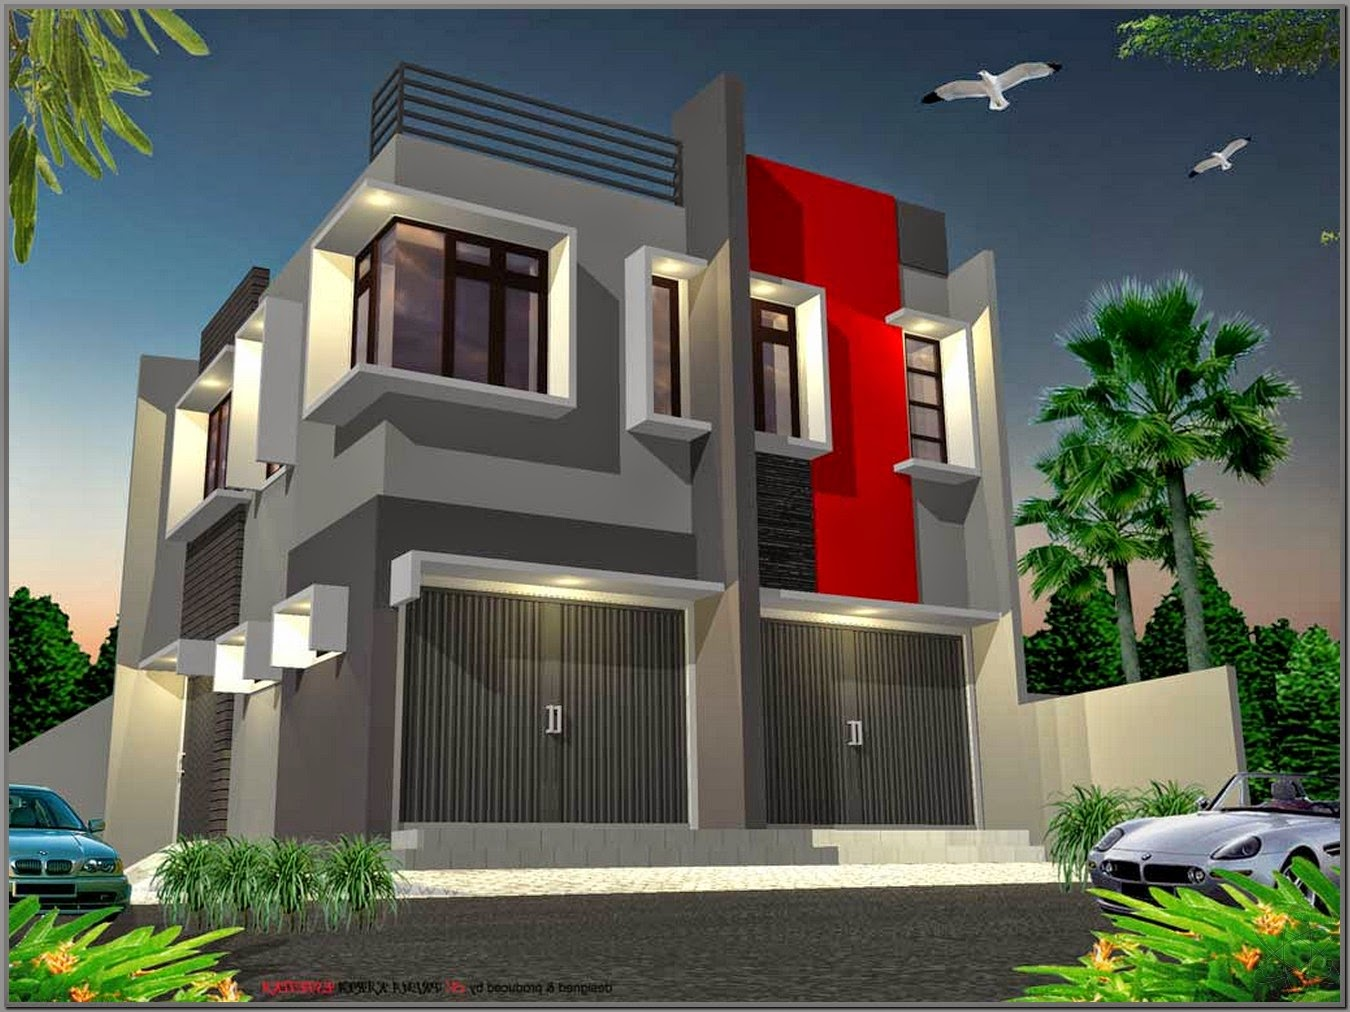 The 2 storey shophouse image design nyoke house design for Storey house designs